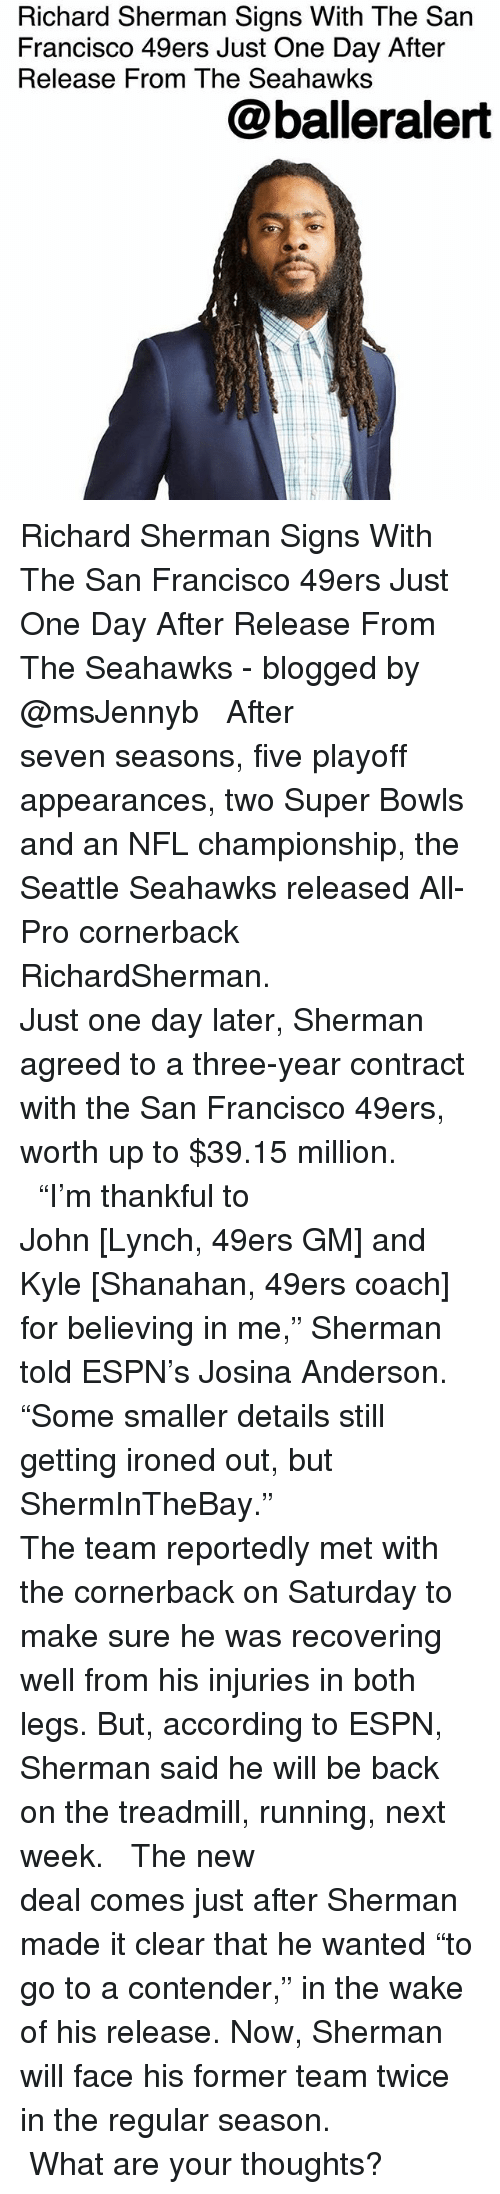 """San Francisco 49ers, Espn, and Memes: Richard Sherman Signs With The San  Francisco 49ers Just One Day After  Release From The Seahawks  @balleralert Richard Sherman Signs With The San Francisco 49ers Just One Day After Release From The Seahawks - blogged by @msJennyb ⠀⠀⠀⠀⠀⠀⠀⠀⠀ ⠀⠀⠀⠀⠀⠀⠀⠀⠀ After seven seasons, five playoff appearances, two Super Bowls and an NFL championship, the Seattle Seahawks released All-Pro cornerback RichardSherman. ⠀⠀⠀⠀⠀⠀⠀⠀⠀ ⠀⠀⠀⠀⠀⠀⠀⠀⠀ Just one day later, Sherman agreed to a three-year contract with the San Francisco 49ers, worth up to $39.15 million. ⠀⠀⠀⠀⠀⠀⠀⠀⠀ ⠀⠀⠀⠀⠀⠀⠀⠀⠀ """"I'm thankful to John [Lynch, 49ers GM] and Kyle [Shanahan, 49ers coach] for believing in me,"""" Sherman told ESPN's Josina Anderson. """"Some smaller details still getting ironed out, but ShermInTheBay."""" ⠀⠀⠀⠀⠀⠀⠀⠀⠀ ⠀⠀⠀⠀⠀⠀⠀⠀⠀ The team reportedly met with the cornerback on Saturday to make sure he was recovering well from his injuries in both legs. But, according to ESPN, Sherman said he will be back on the treadmill, running, next week. ⠀⠀⠀⠀⠀⠀⠀⠀⠀ ⠀⠀⠀⠀⠀⠀⠀⠀⠀ The new deal comes just after Sherman made it clear that he wanted """"to go to a contender,"""" in the wake of his release. Now, Sherman will face his former team twice in the regular season. ⠀⠀⠀⠀⠀⠀⠀⠀⠀ ⠀⠀⠀⠀⠀⠀⠀⠀⠀ What are your thoughts?"""